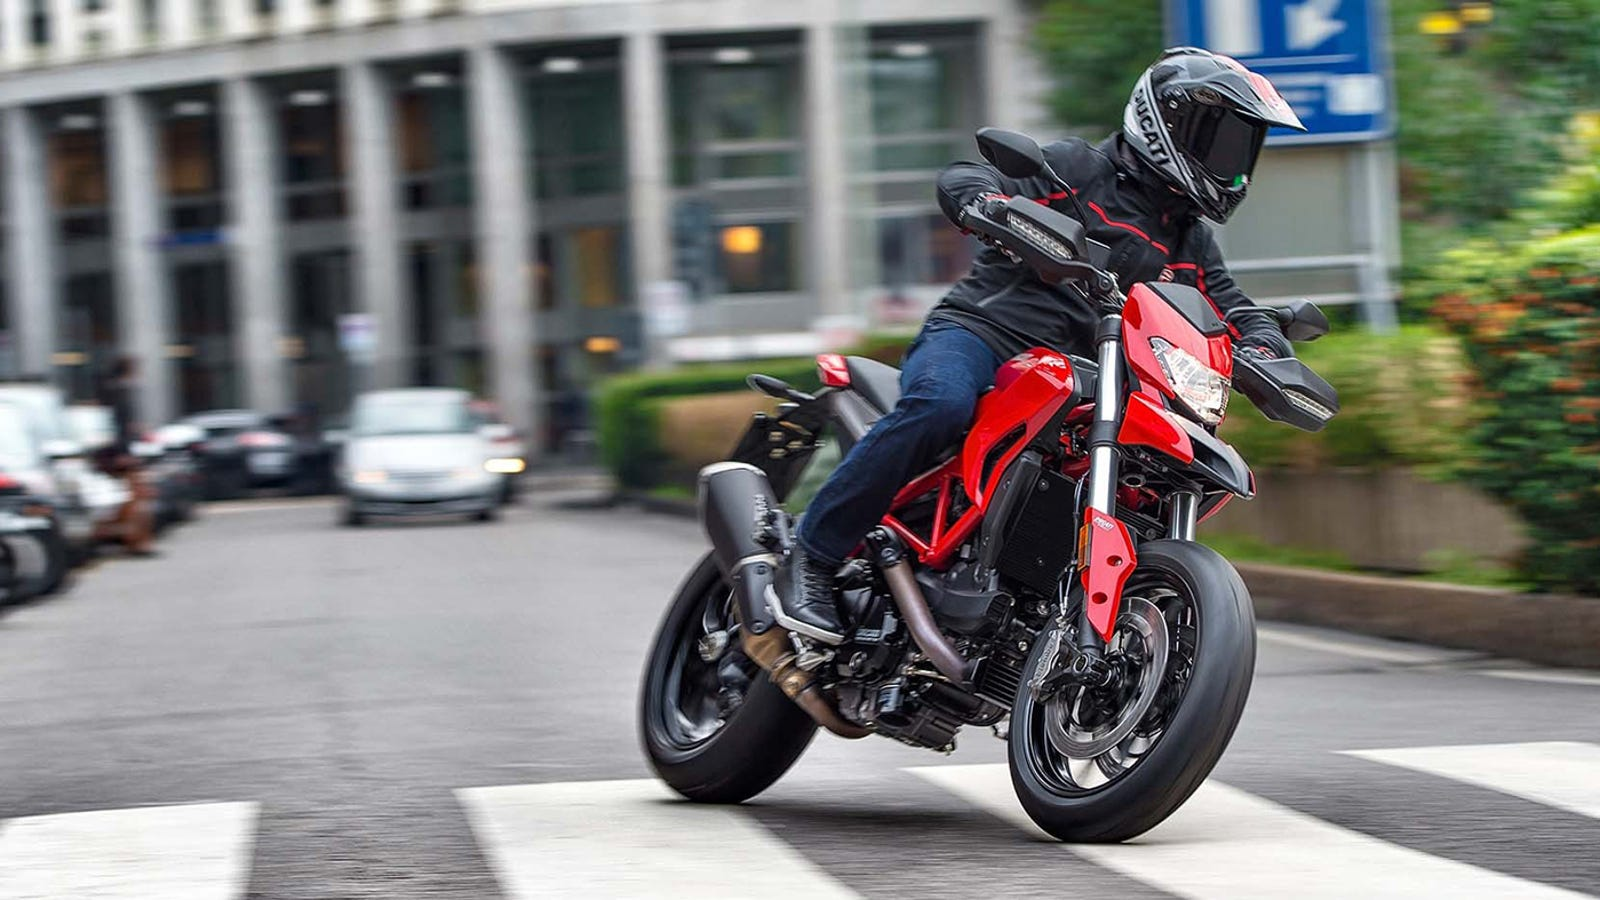 What No One Tells You About Commuting On A Motorcycle